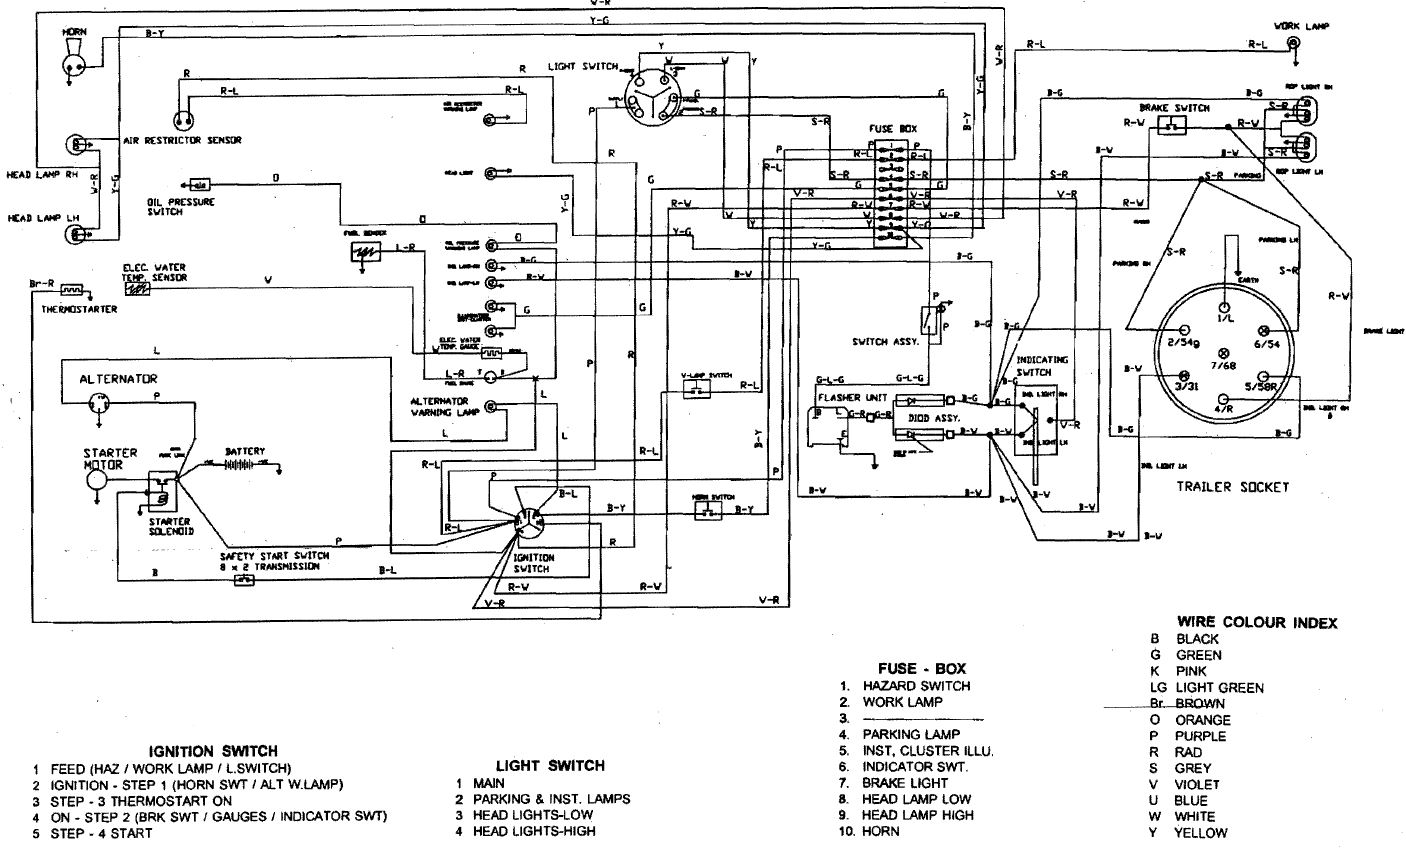 john deere 310 backhoe wiring diagram together with john deere 820